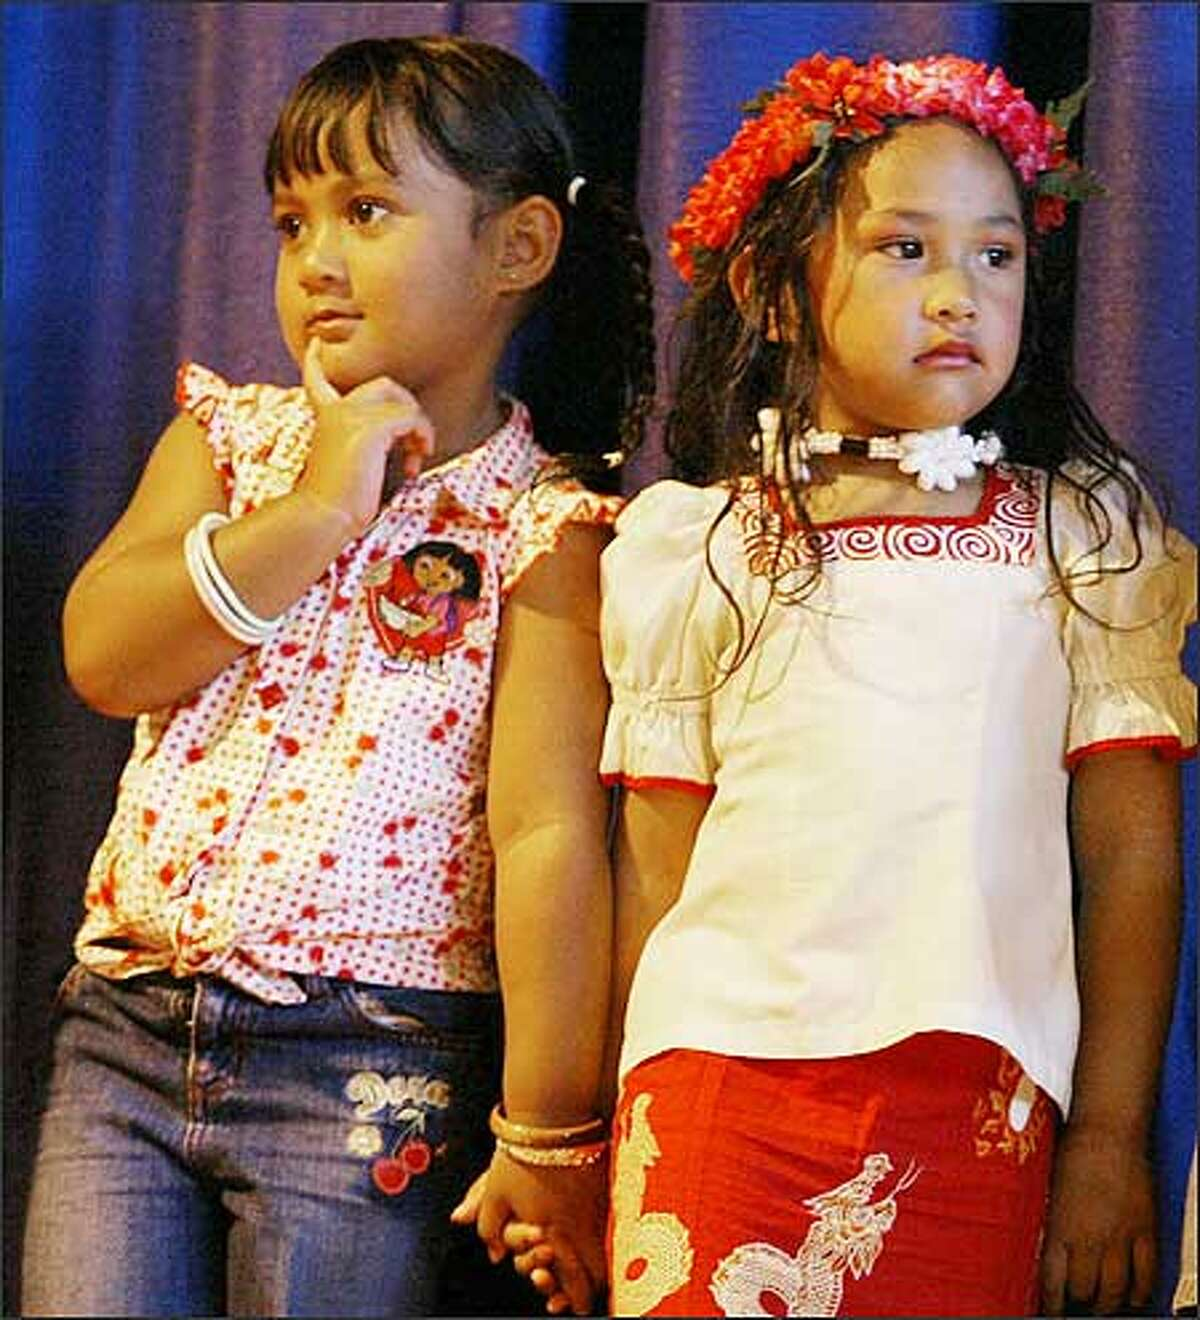 Letavia Laga, 5, left, and Merina Sanchez, 4, stand on stage at the Pasefika School Readiness program's